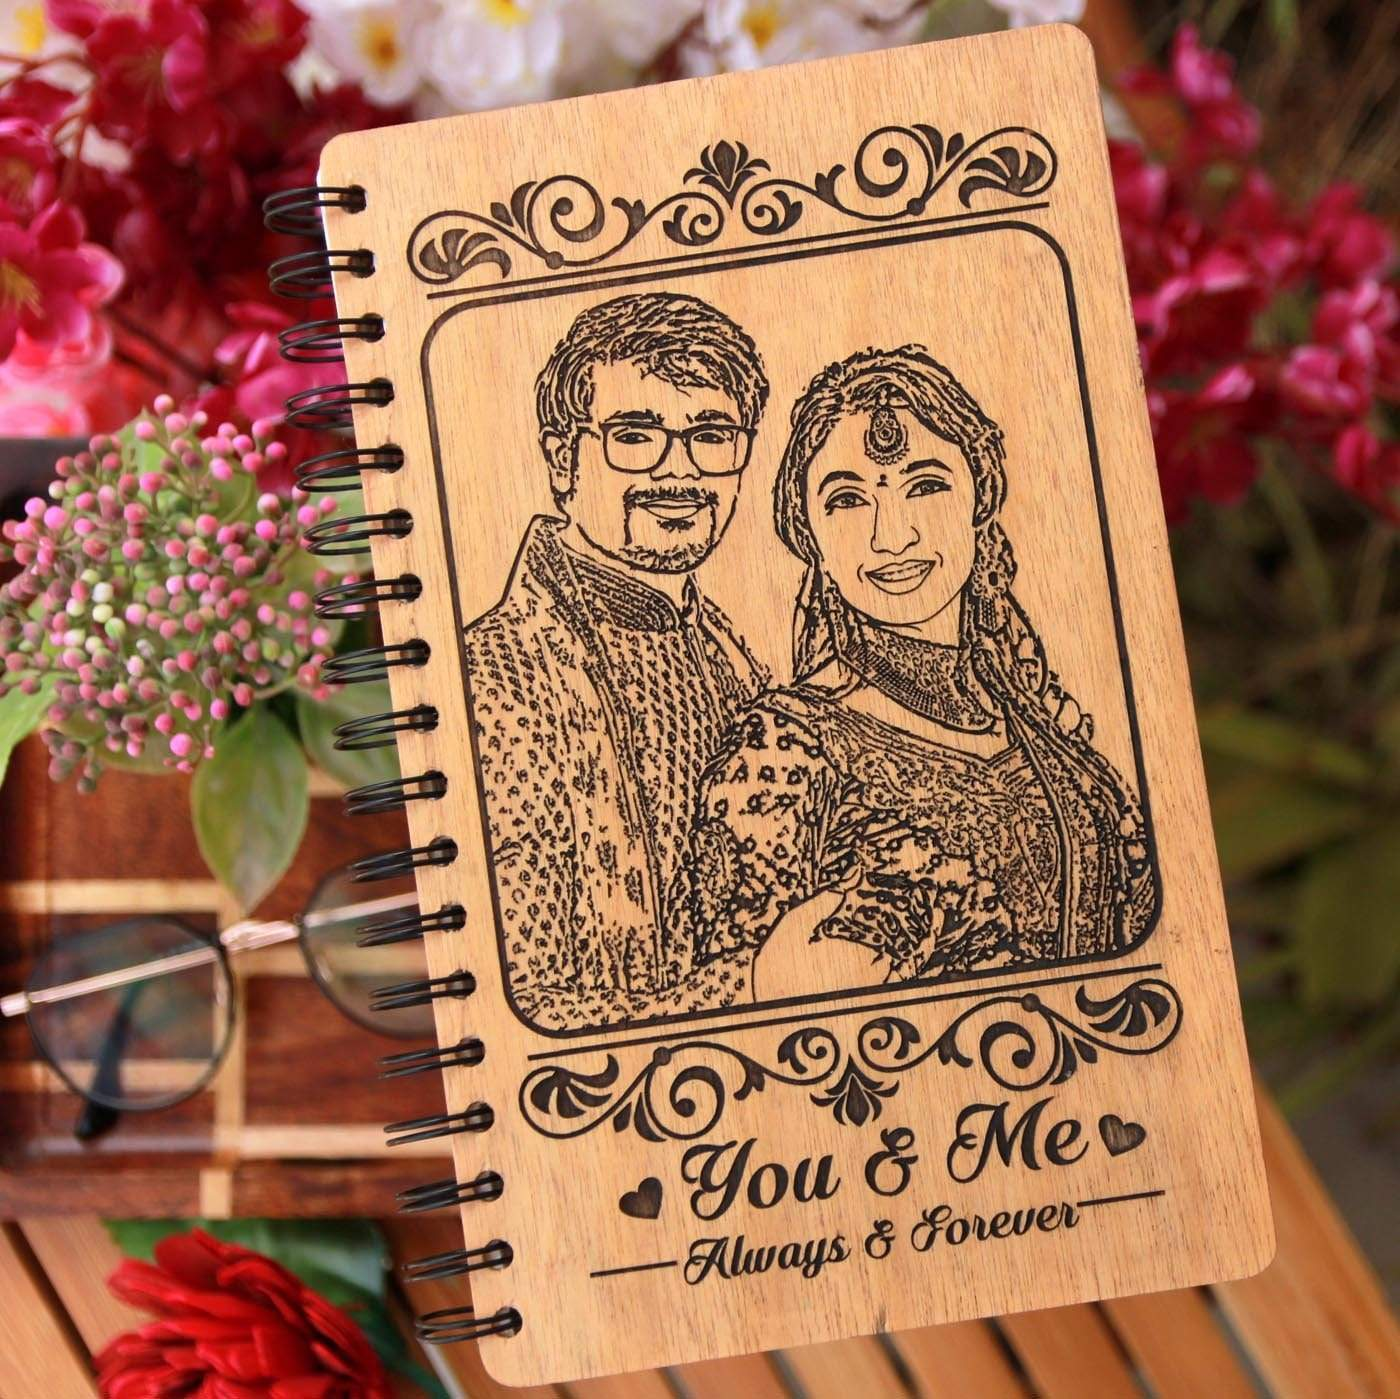 You And Me Always And Forever Wooden Notebook. This Photo Notebook is one of the most romantic gifts for husband. Looking for Gifts for him or gifts for her? This Wooden Notebook Journal Makes One Of The Best Personalized Gifts